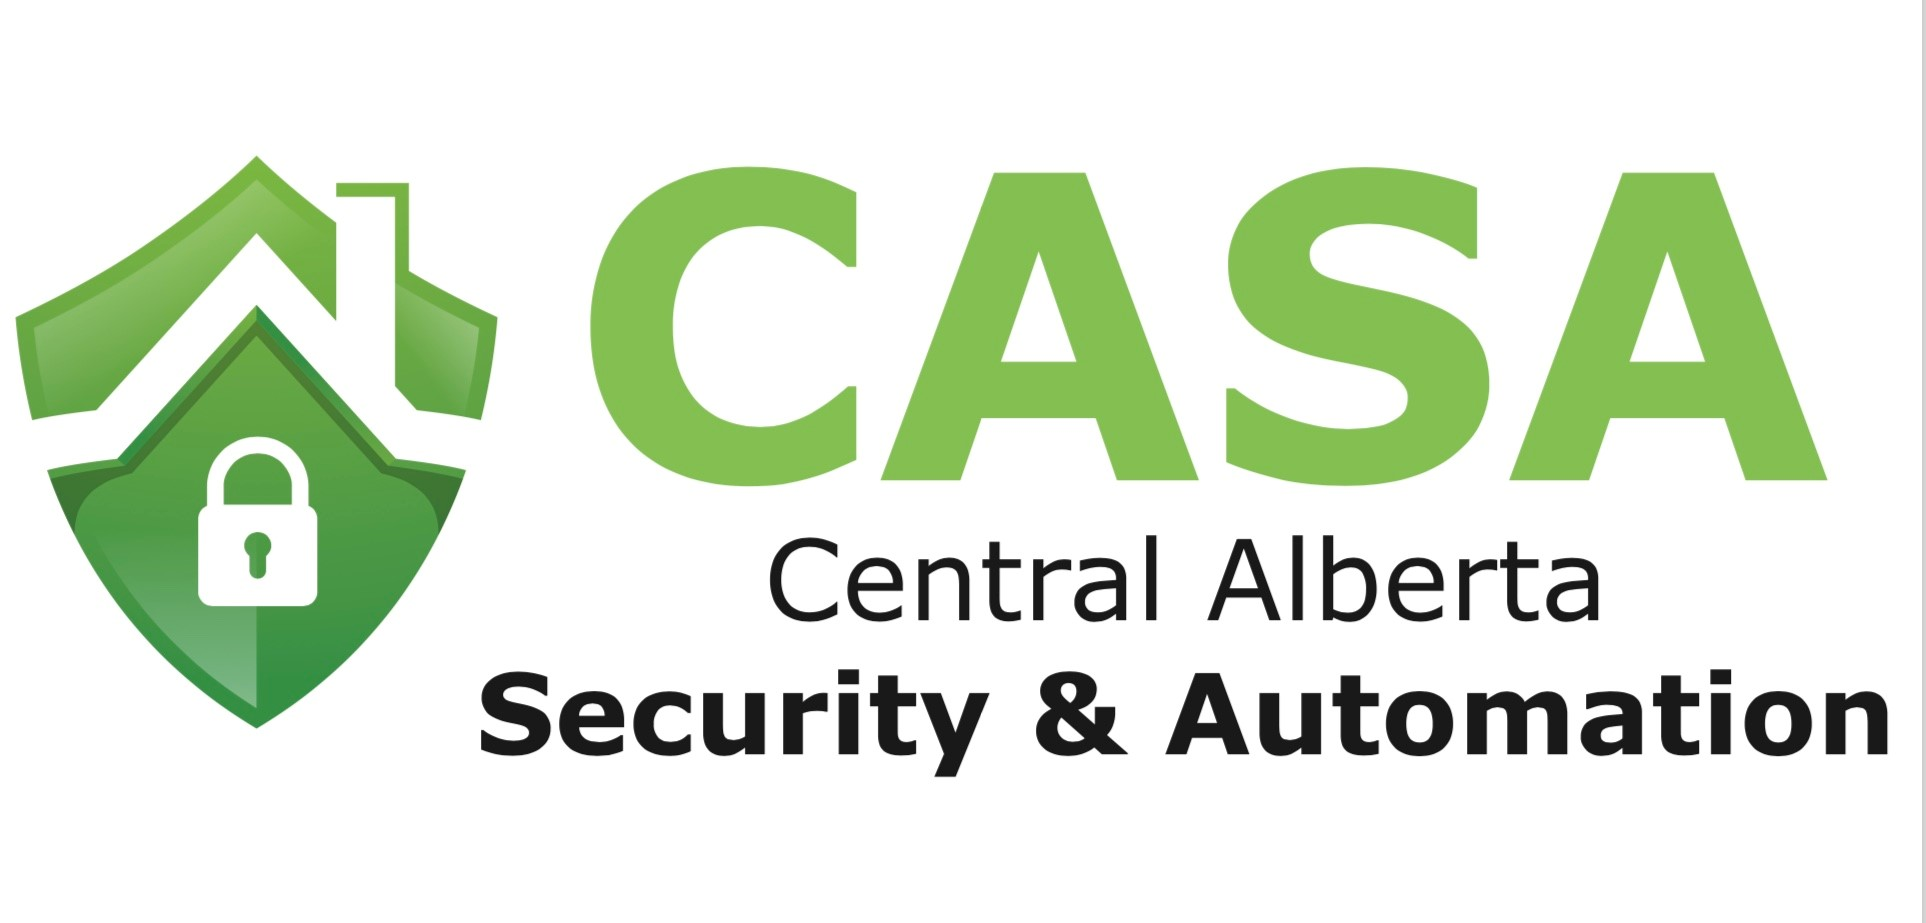 CENTRAL ALBERTA SECURITY & AUTOMATION  logo